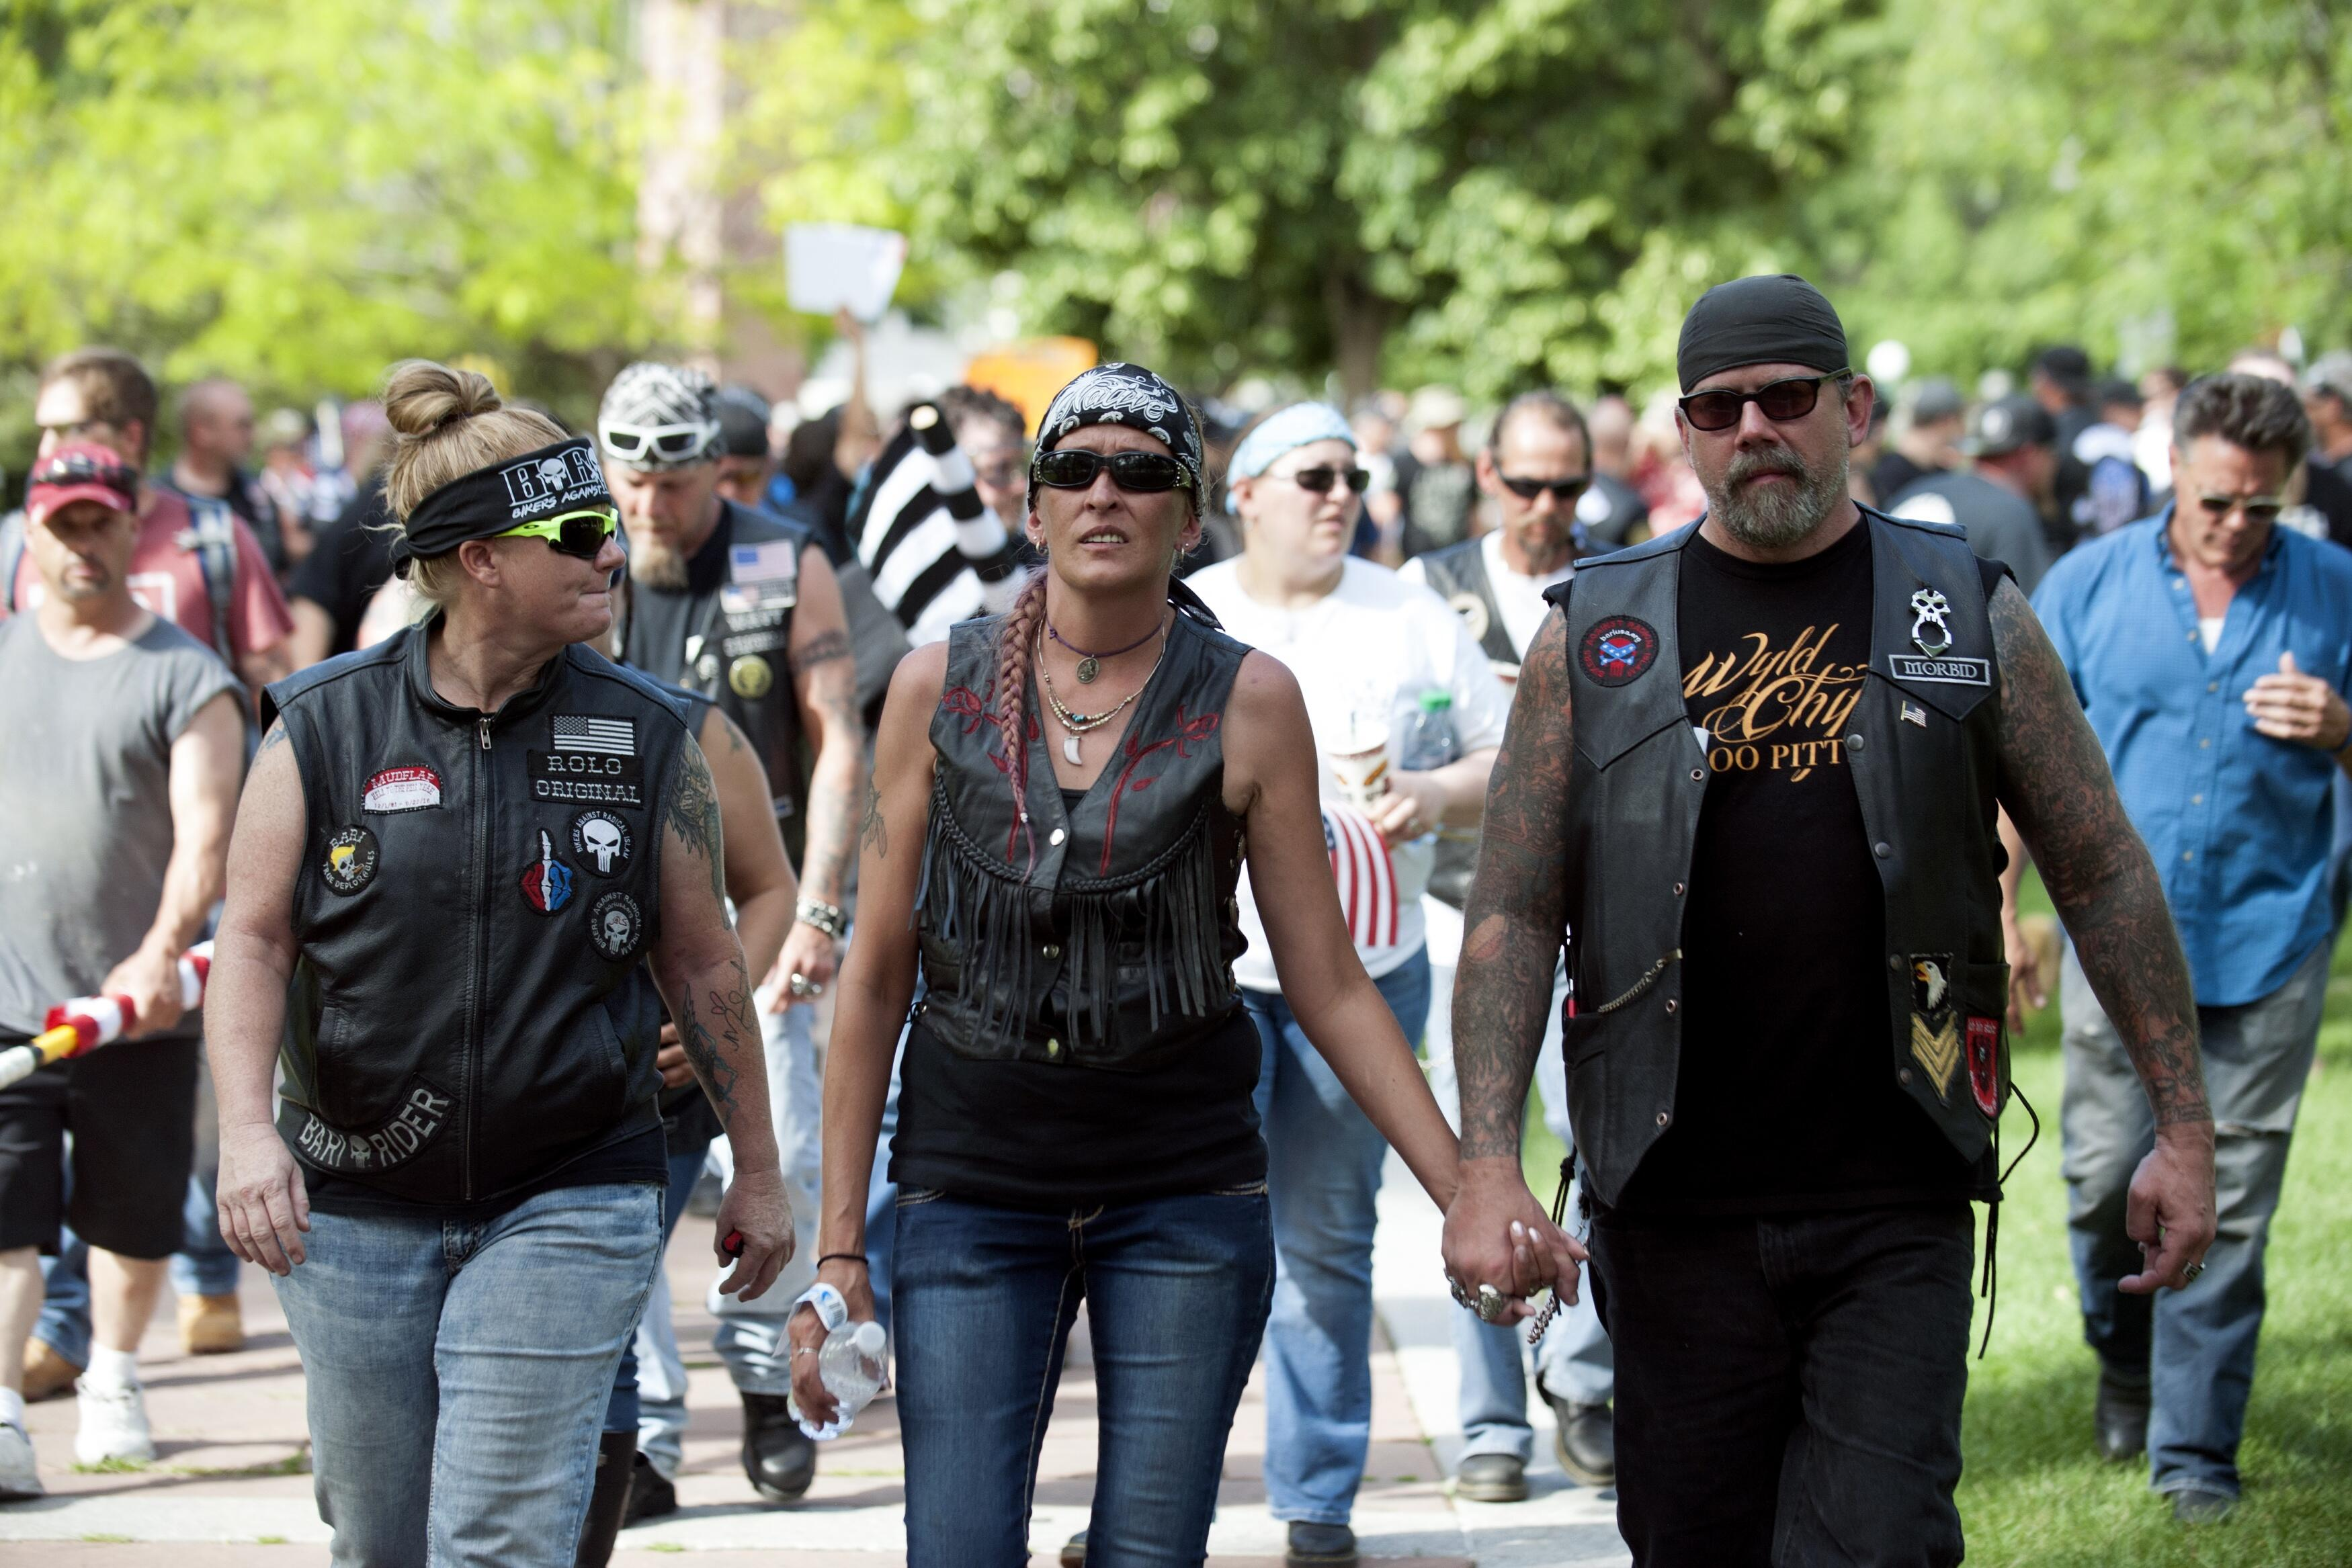 Members of Bikers Against Radical Islam leave the Denver March Against Sharia Law in Denver, Colorado on June 10, 2017. The march was supported by two right-wing groups, The Proud Boys, and Bikers Against Radical Islam. Police kept the counter protestors